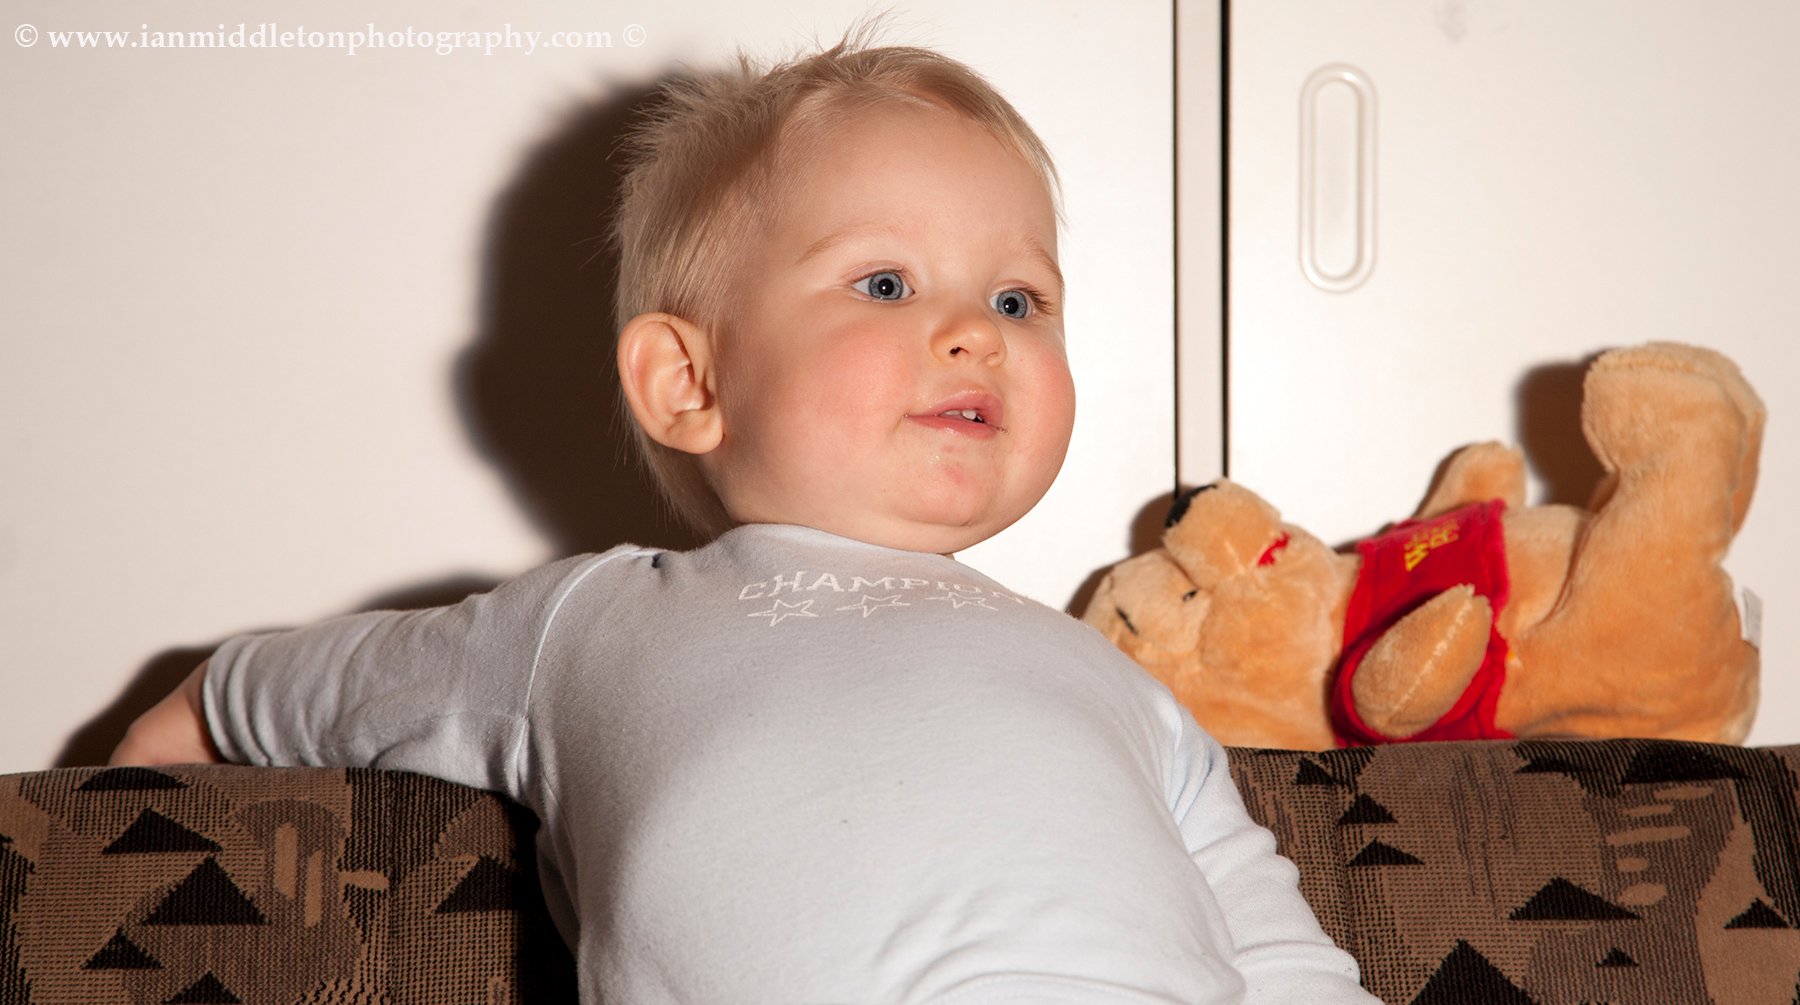 Example of how direct light with a flash causes problems with shadows in portrait photography.